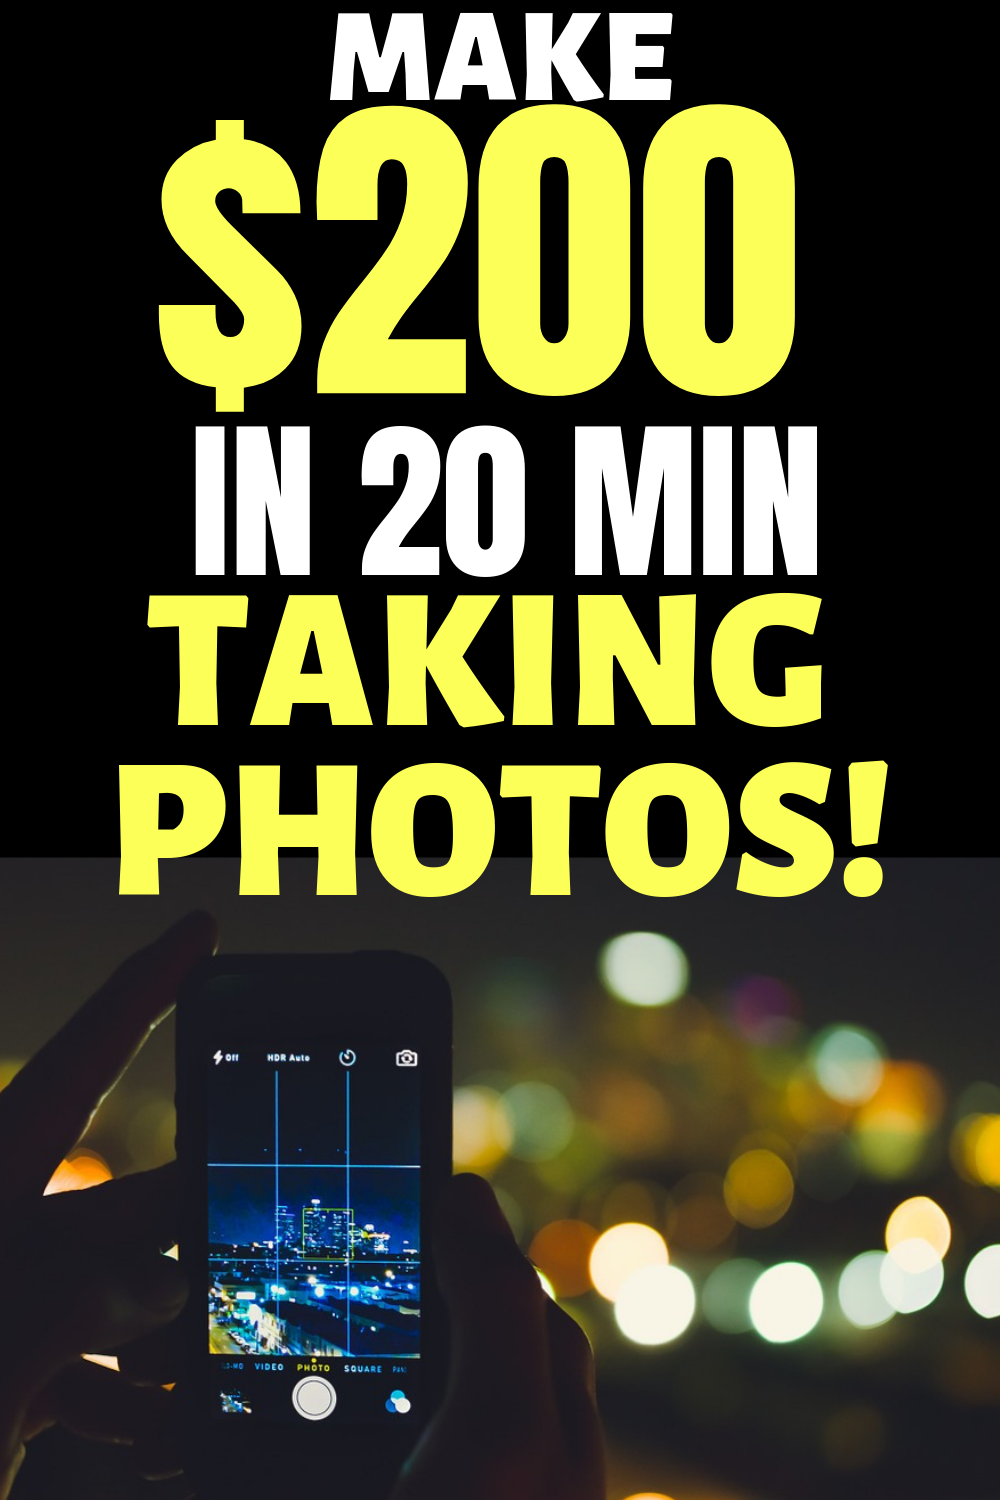 Discover an app that pays up to 200 in 20 minutes for